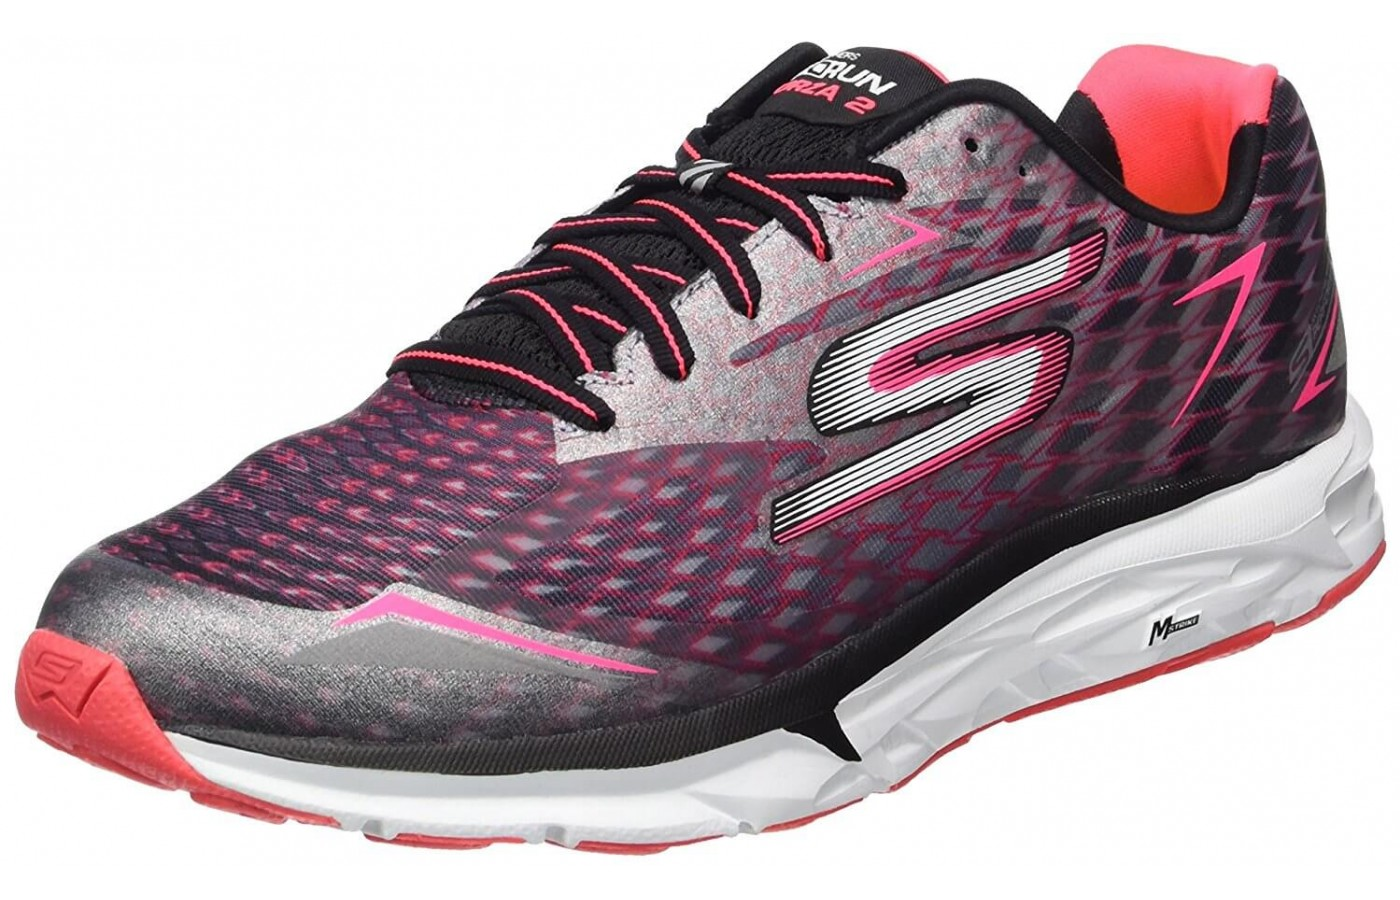 The Skechers GoRUN Forza 2 has a new 5GEN midsole